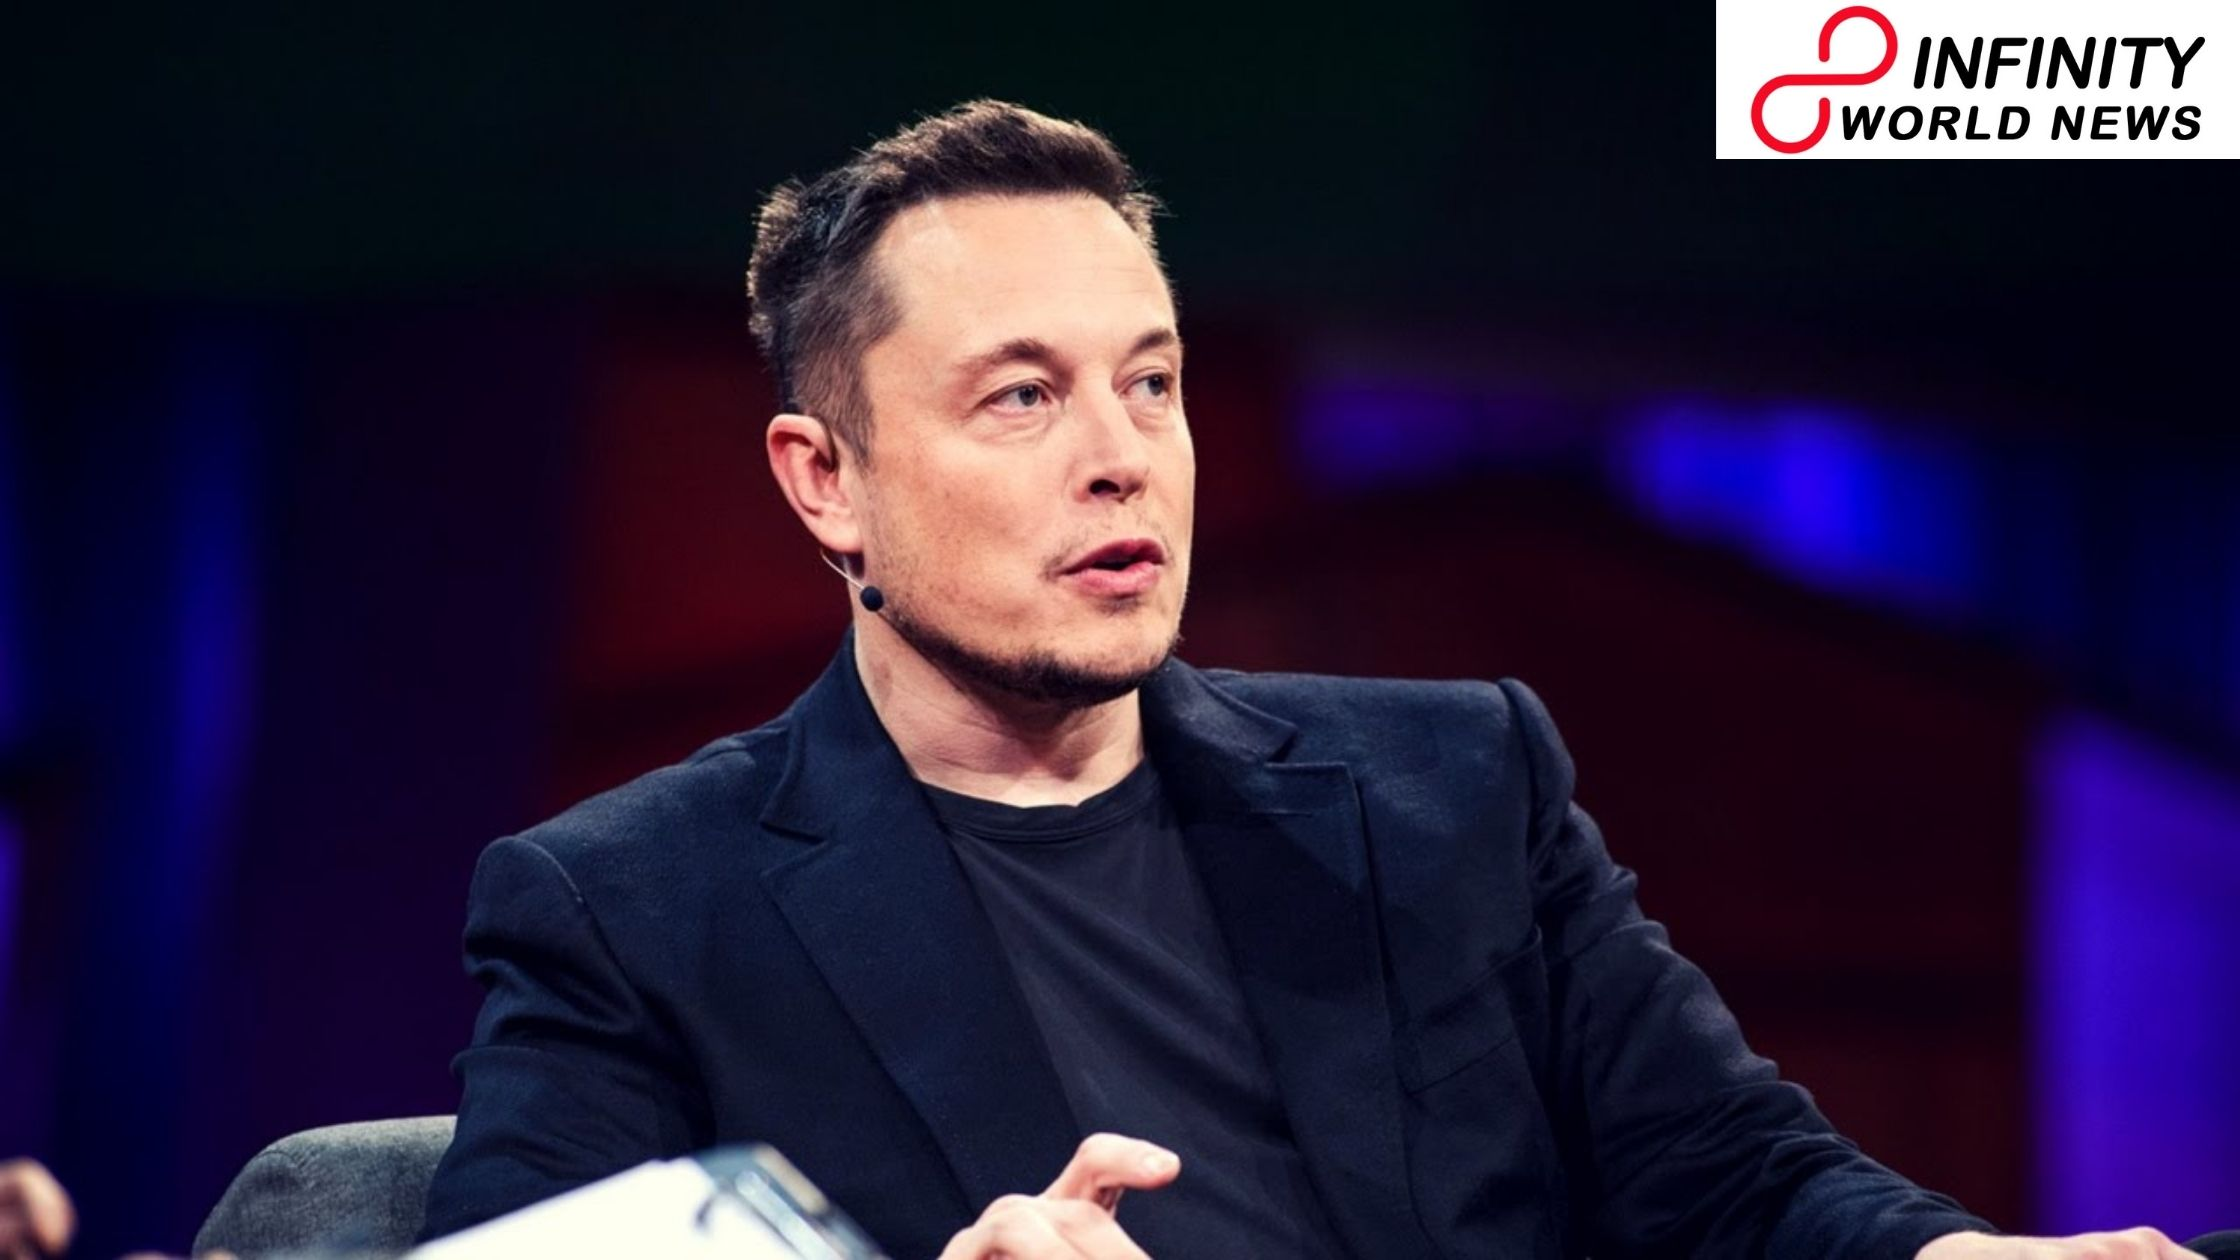 Elon Musk's SpaceX Will Make Its Laws on Mars, Not Follow Universal Ones Elon Musk's SpaceX Will Make Its Laws on Mars, Not Follow Universal Ones